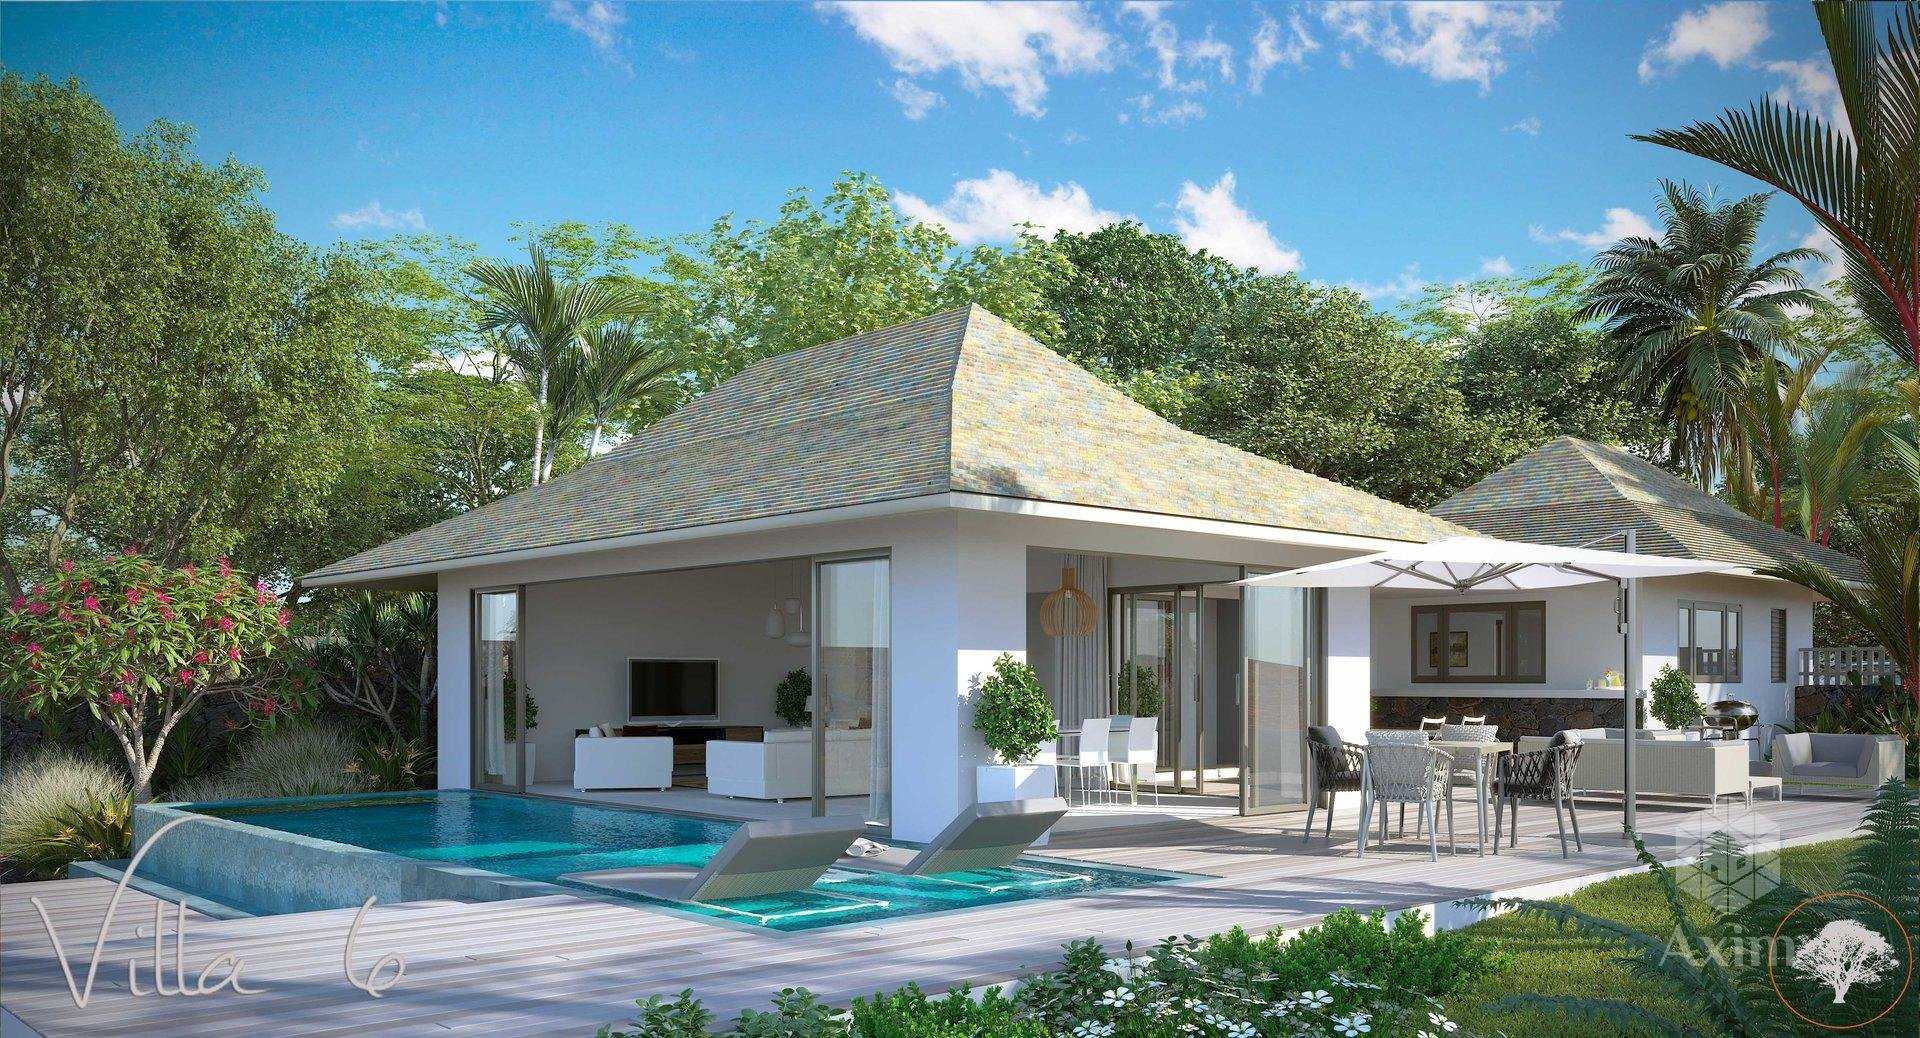 6 luxury villas between sea and mountains in the heart of nature